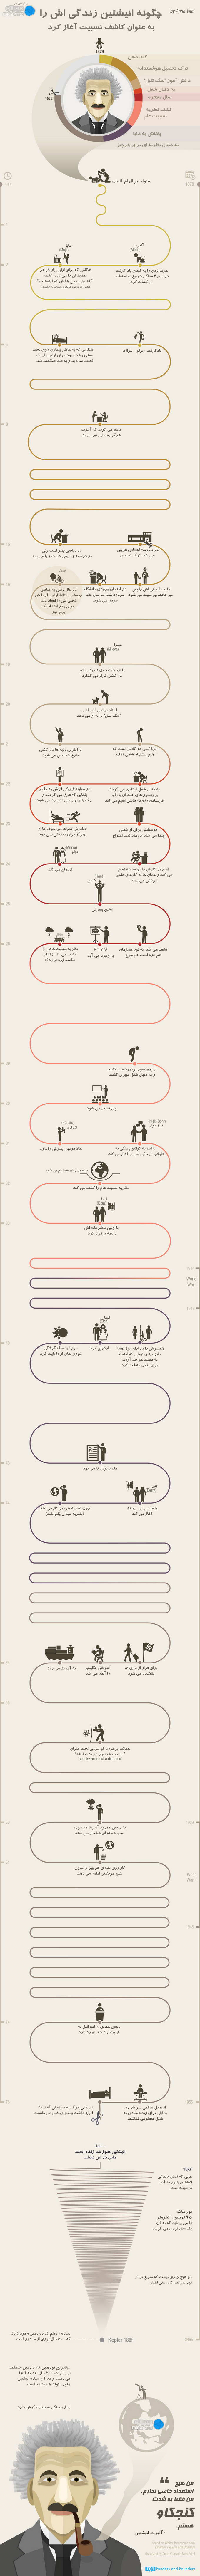 how-einstein-started-infographic-Digiato_resize